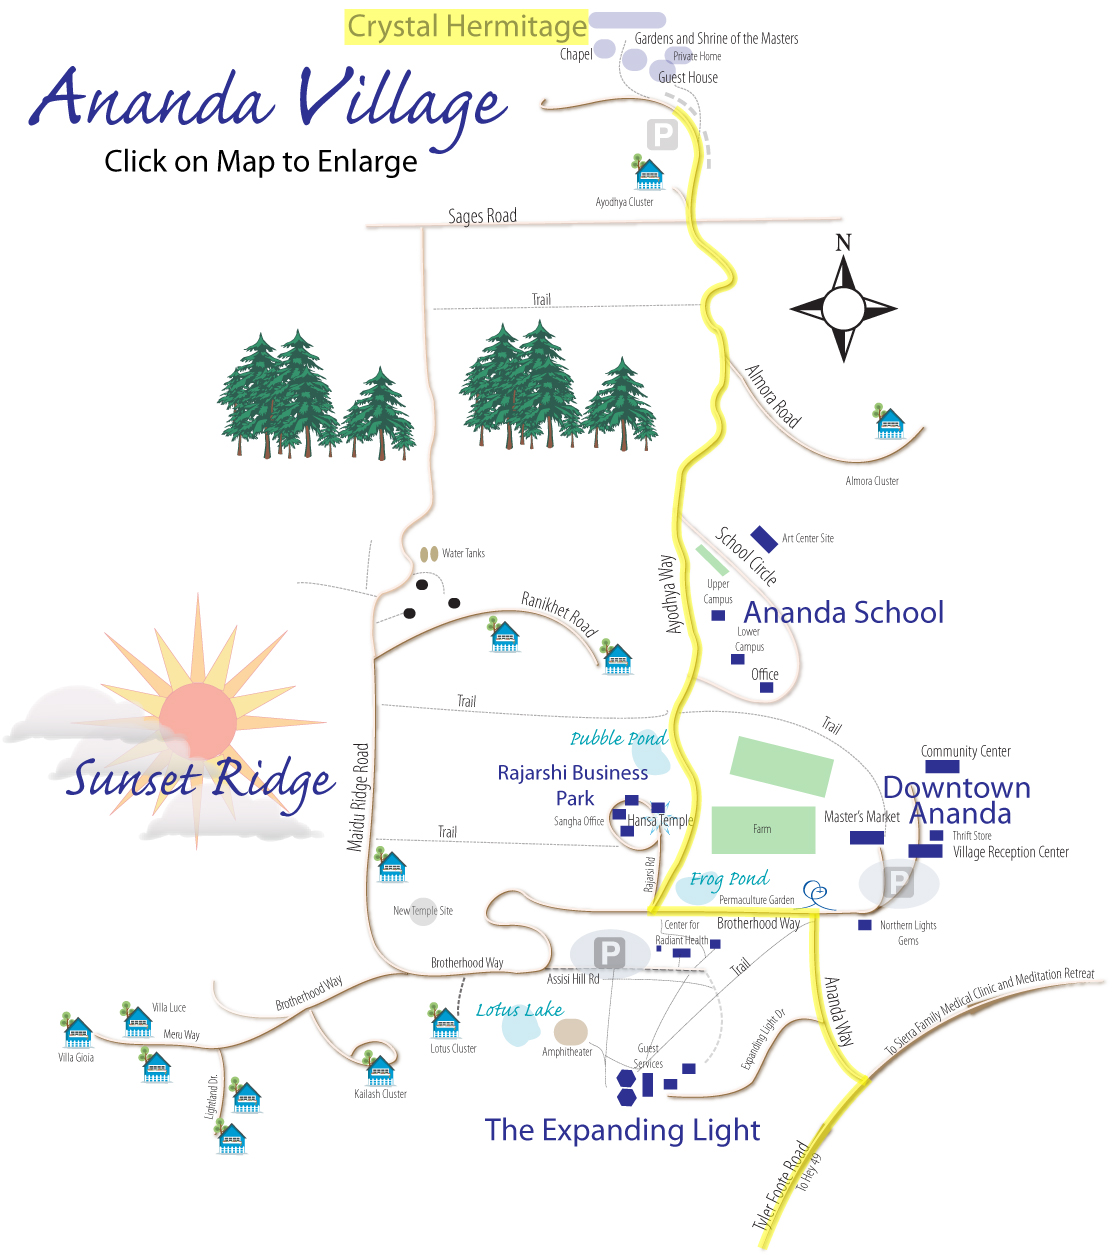 Crystal Nevada Map Directions to Crystal Hermitage | Ananda Village